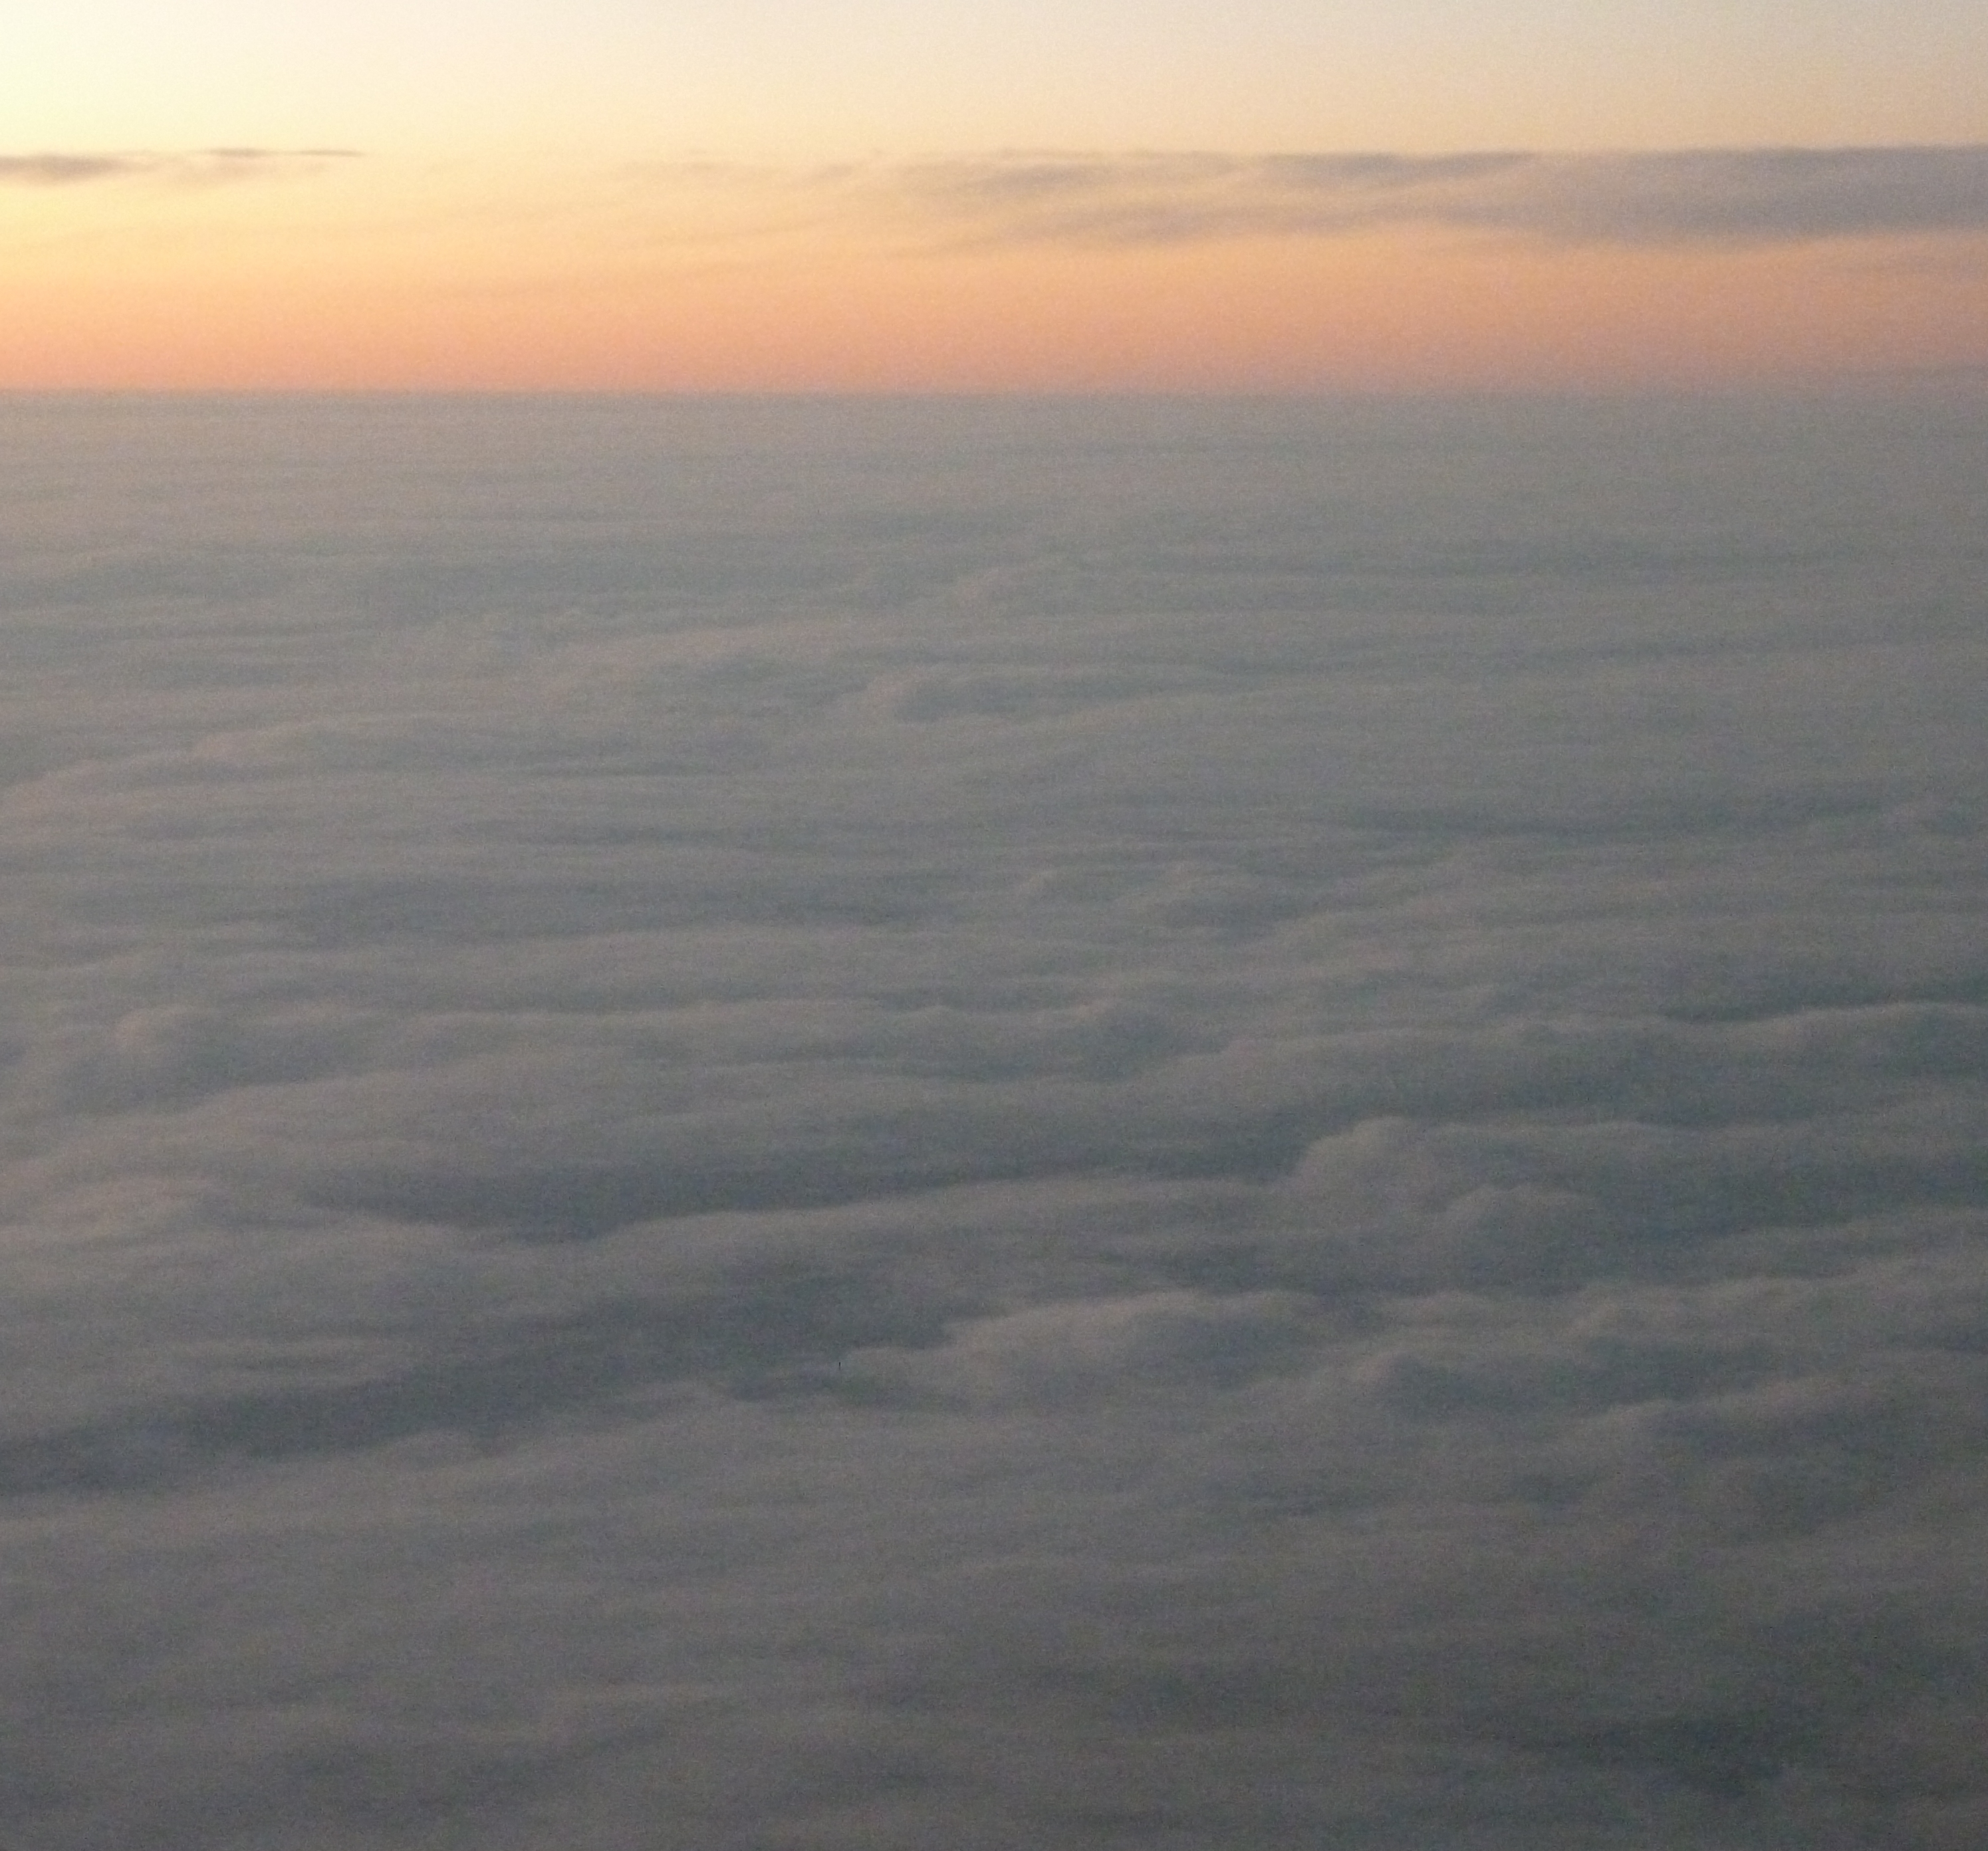 A view from on top the clouds